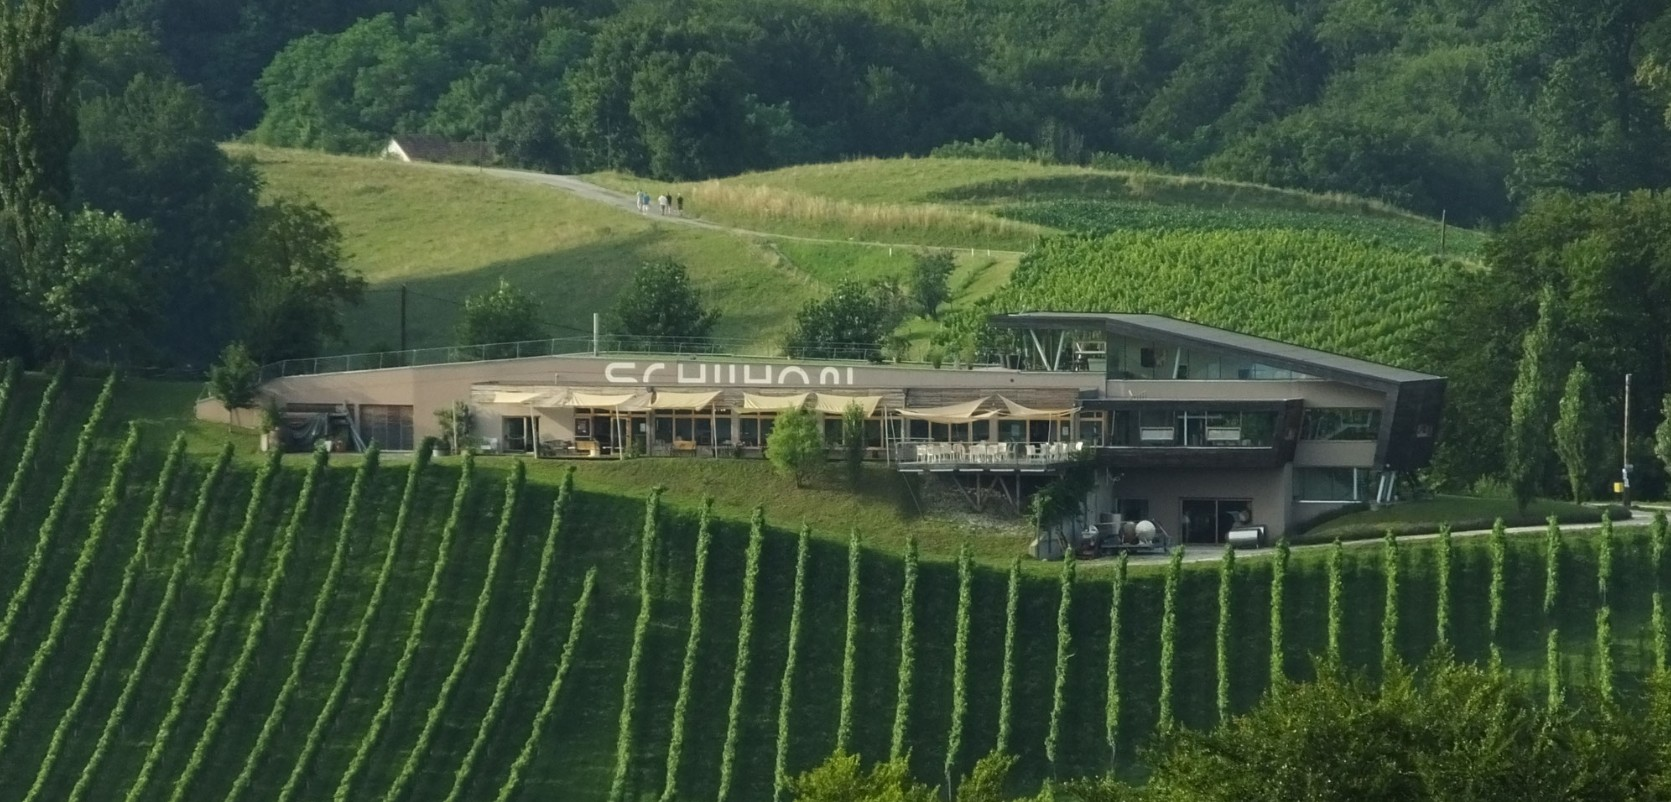 Schilhan - winery building in the middle of the vineyards